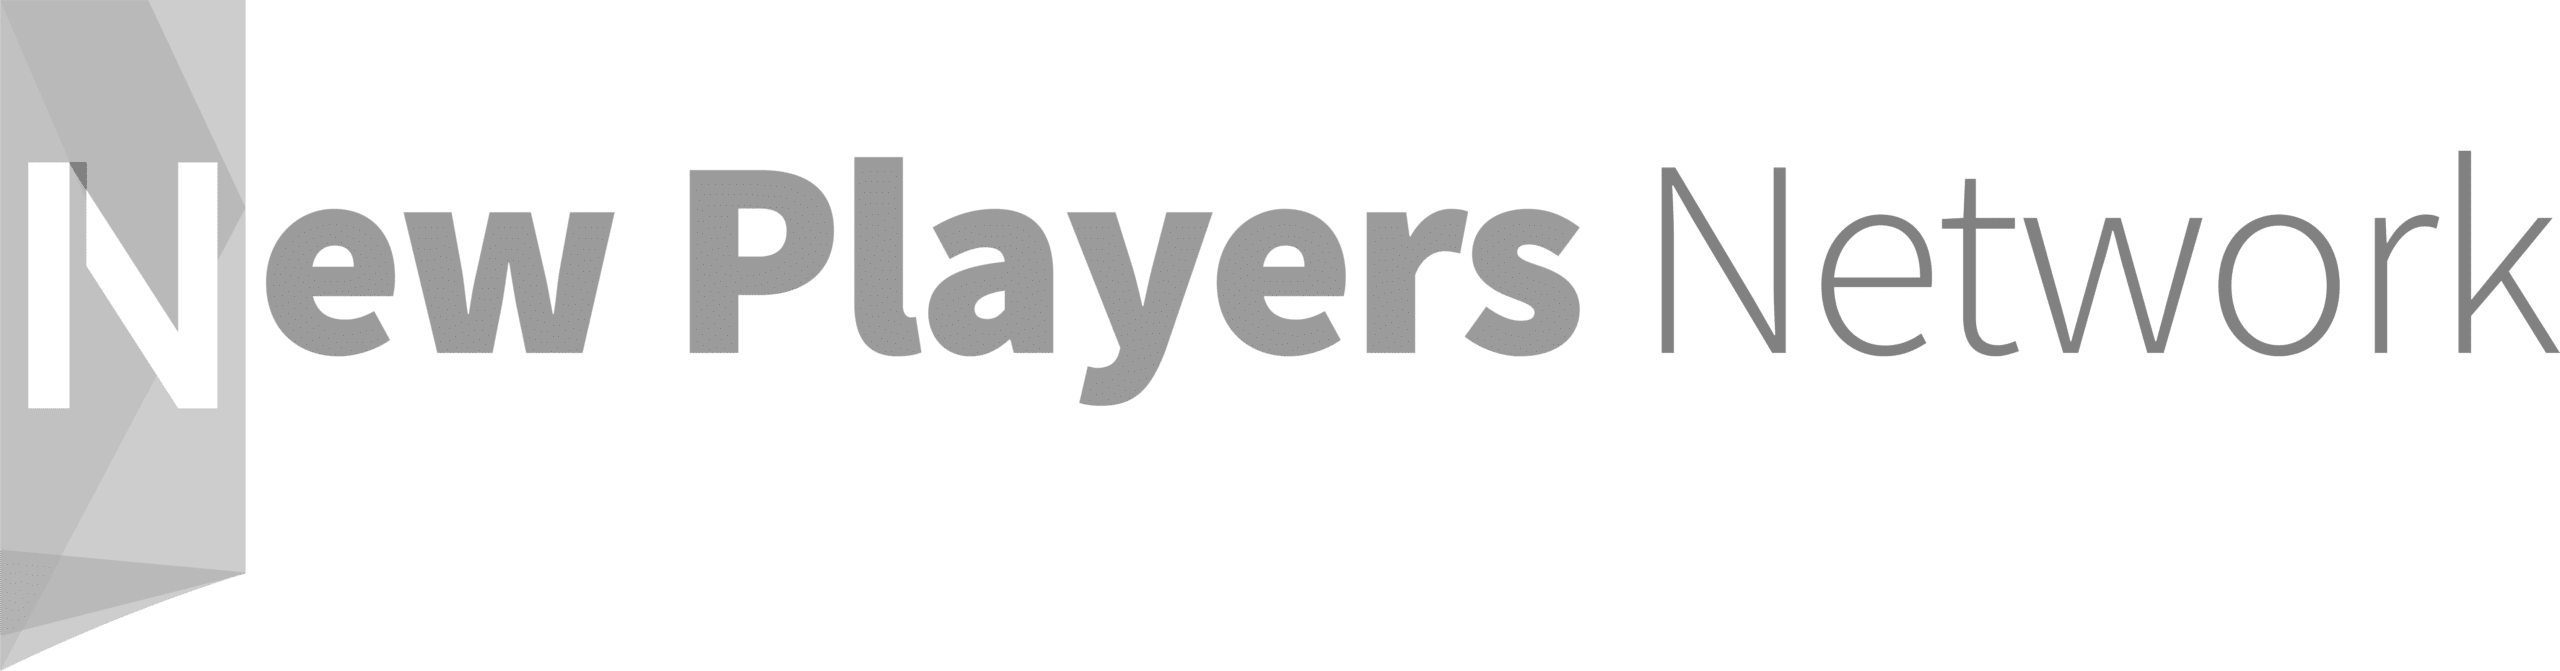 New Players Network Logo